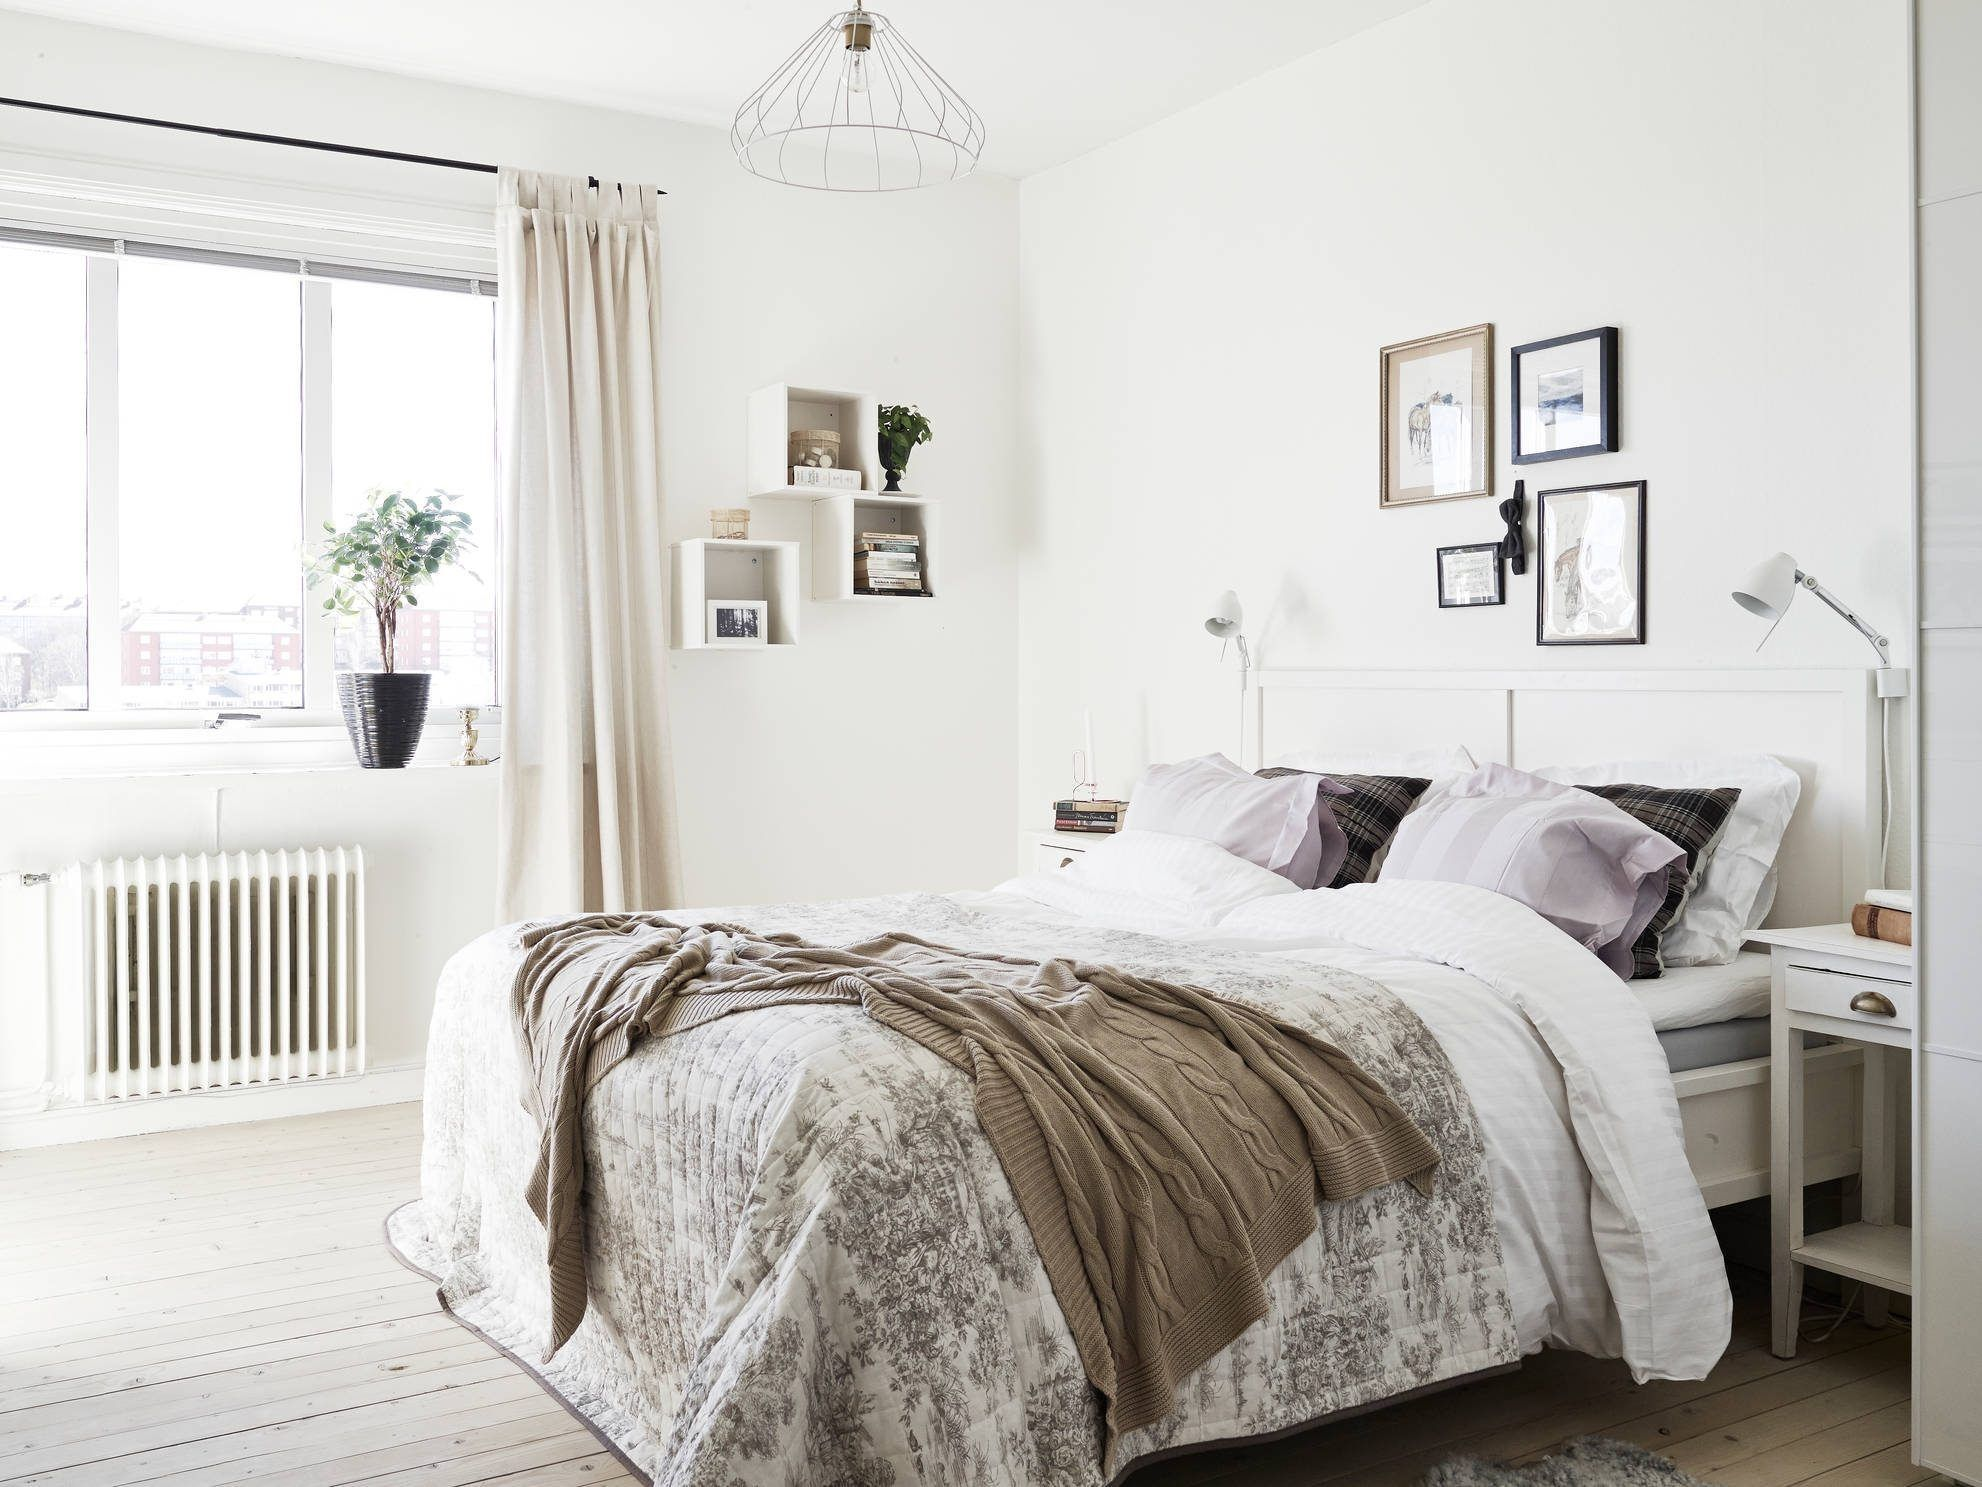 Minimalist Scandinavian Bedroom   For Small Rooms Master For Men For Women  For Teen Girls For Couples DIY Boys Apartment Cozy Rustic Boho Vintage  Modern ...